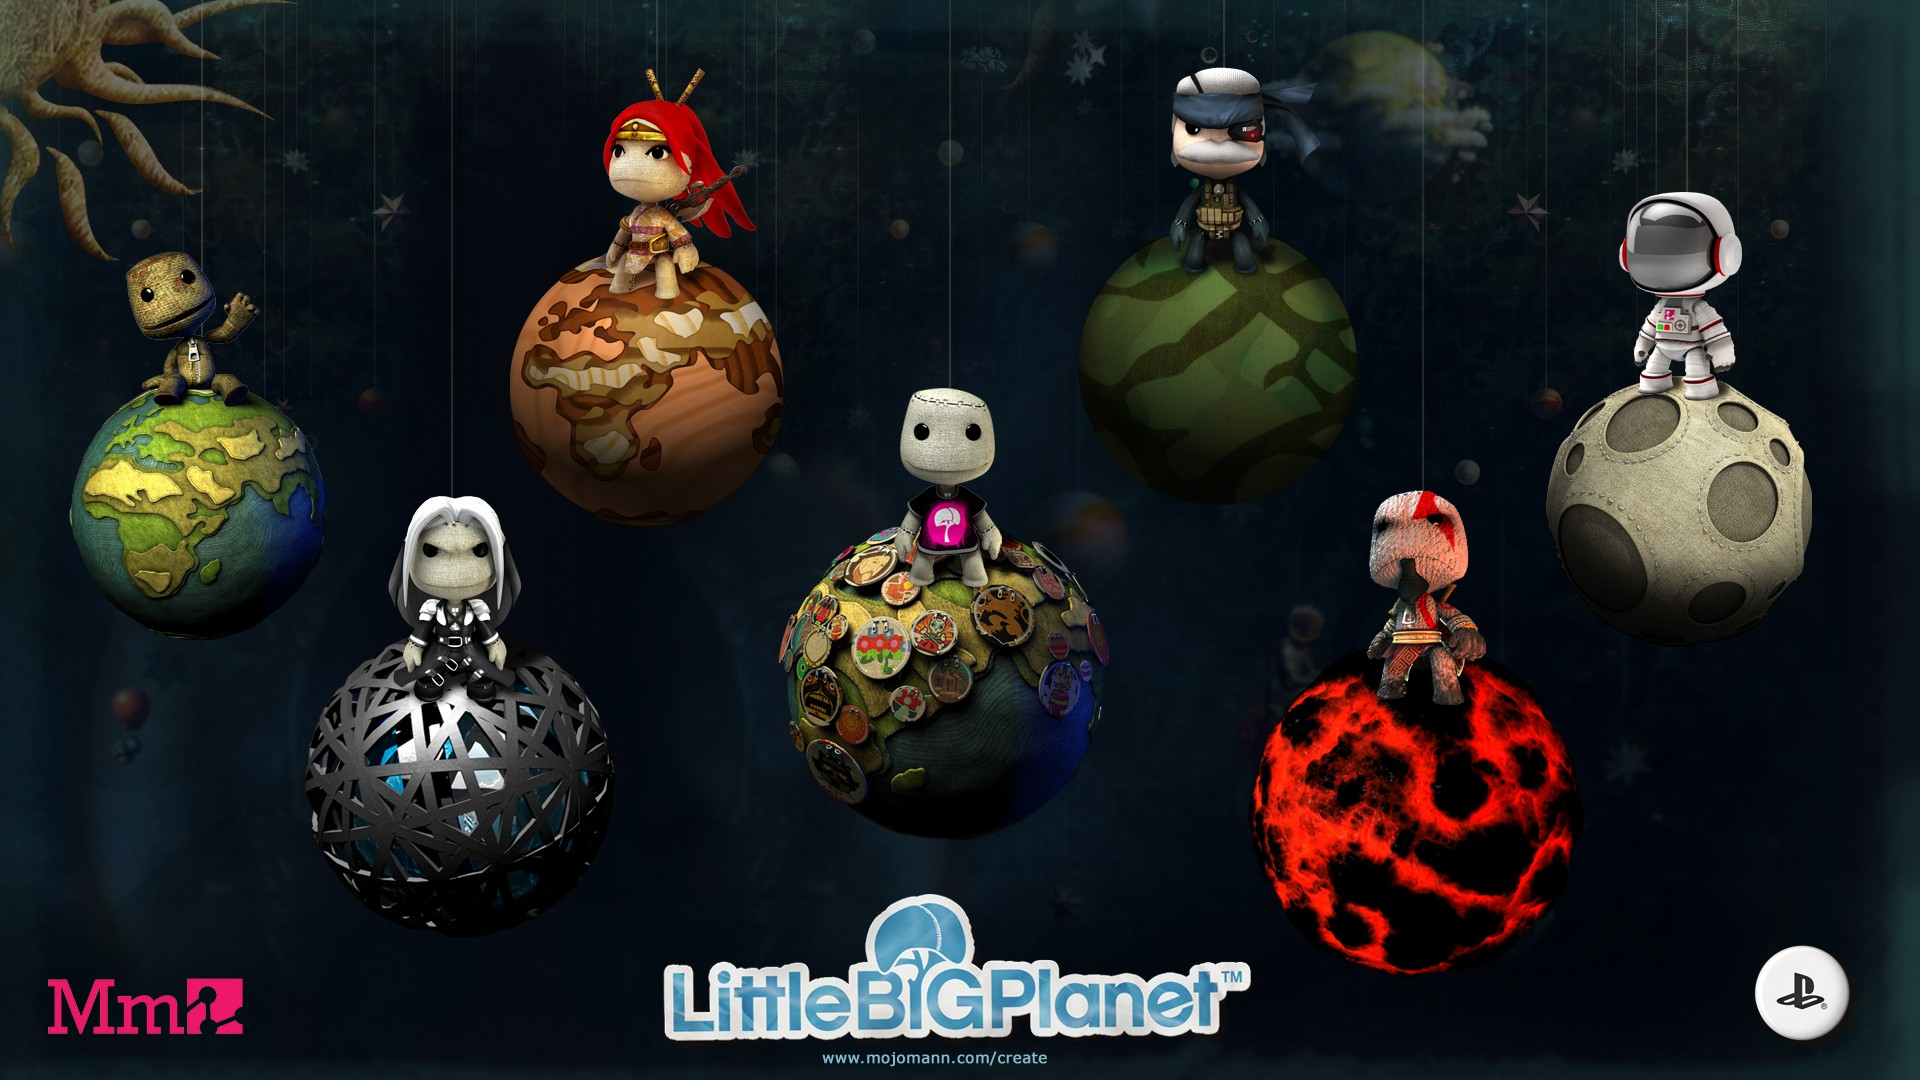 littlebigplanet computer wallpapers desktop backgrounds